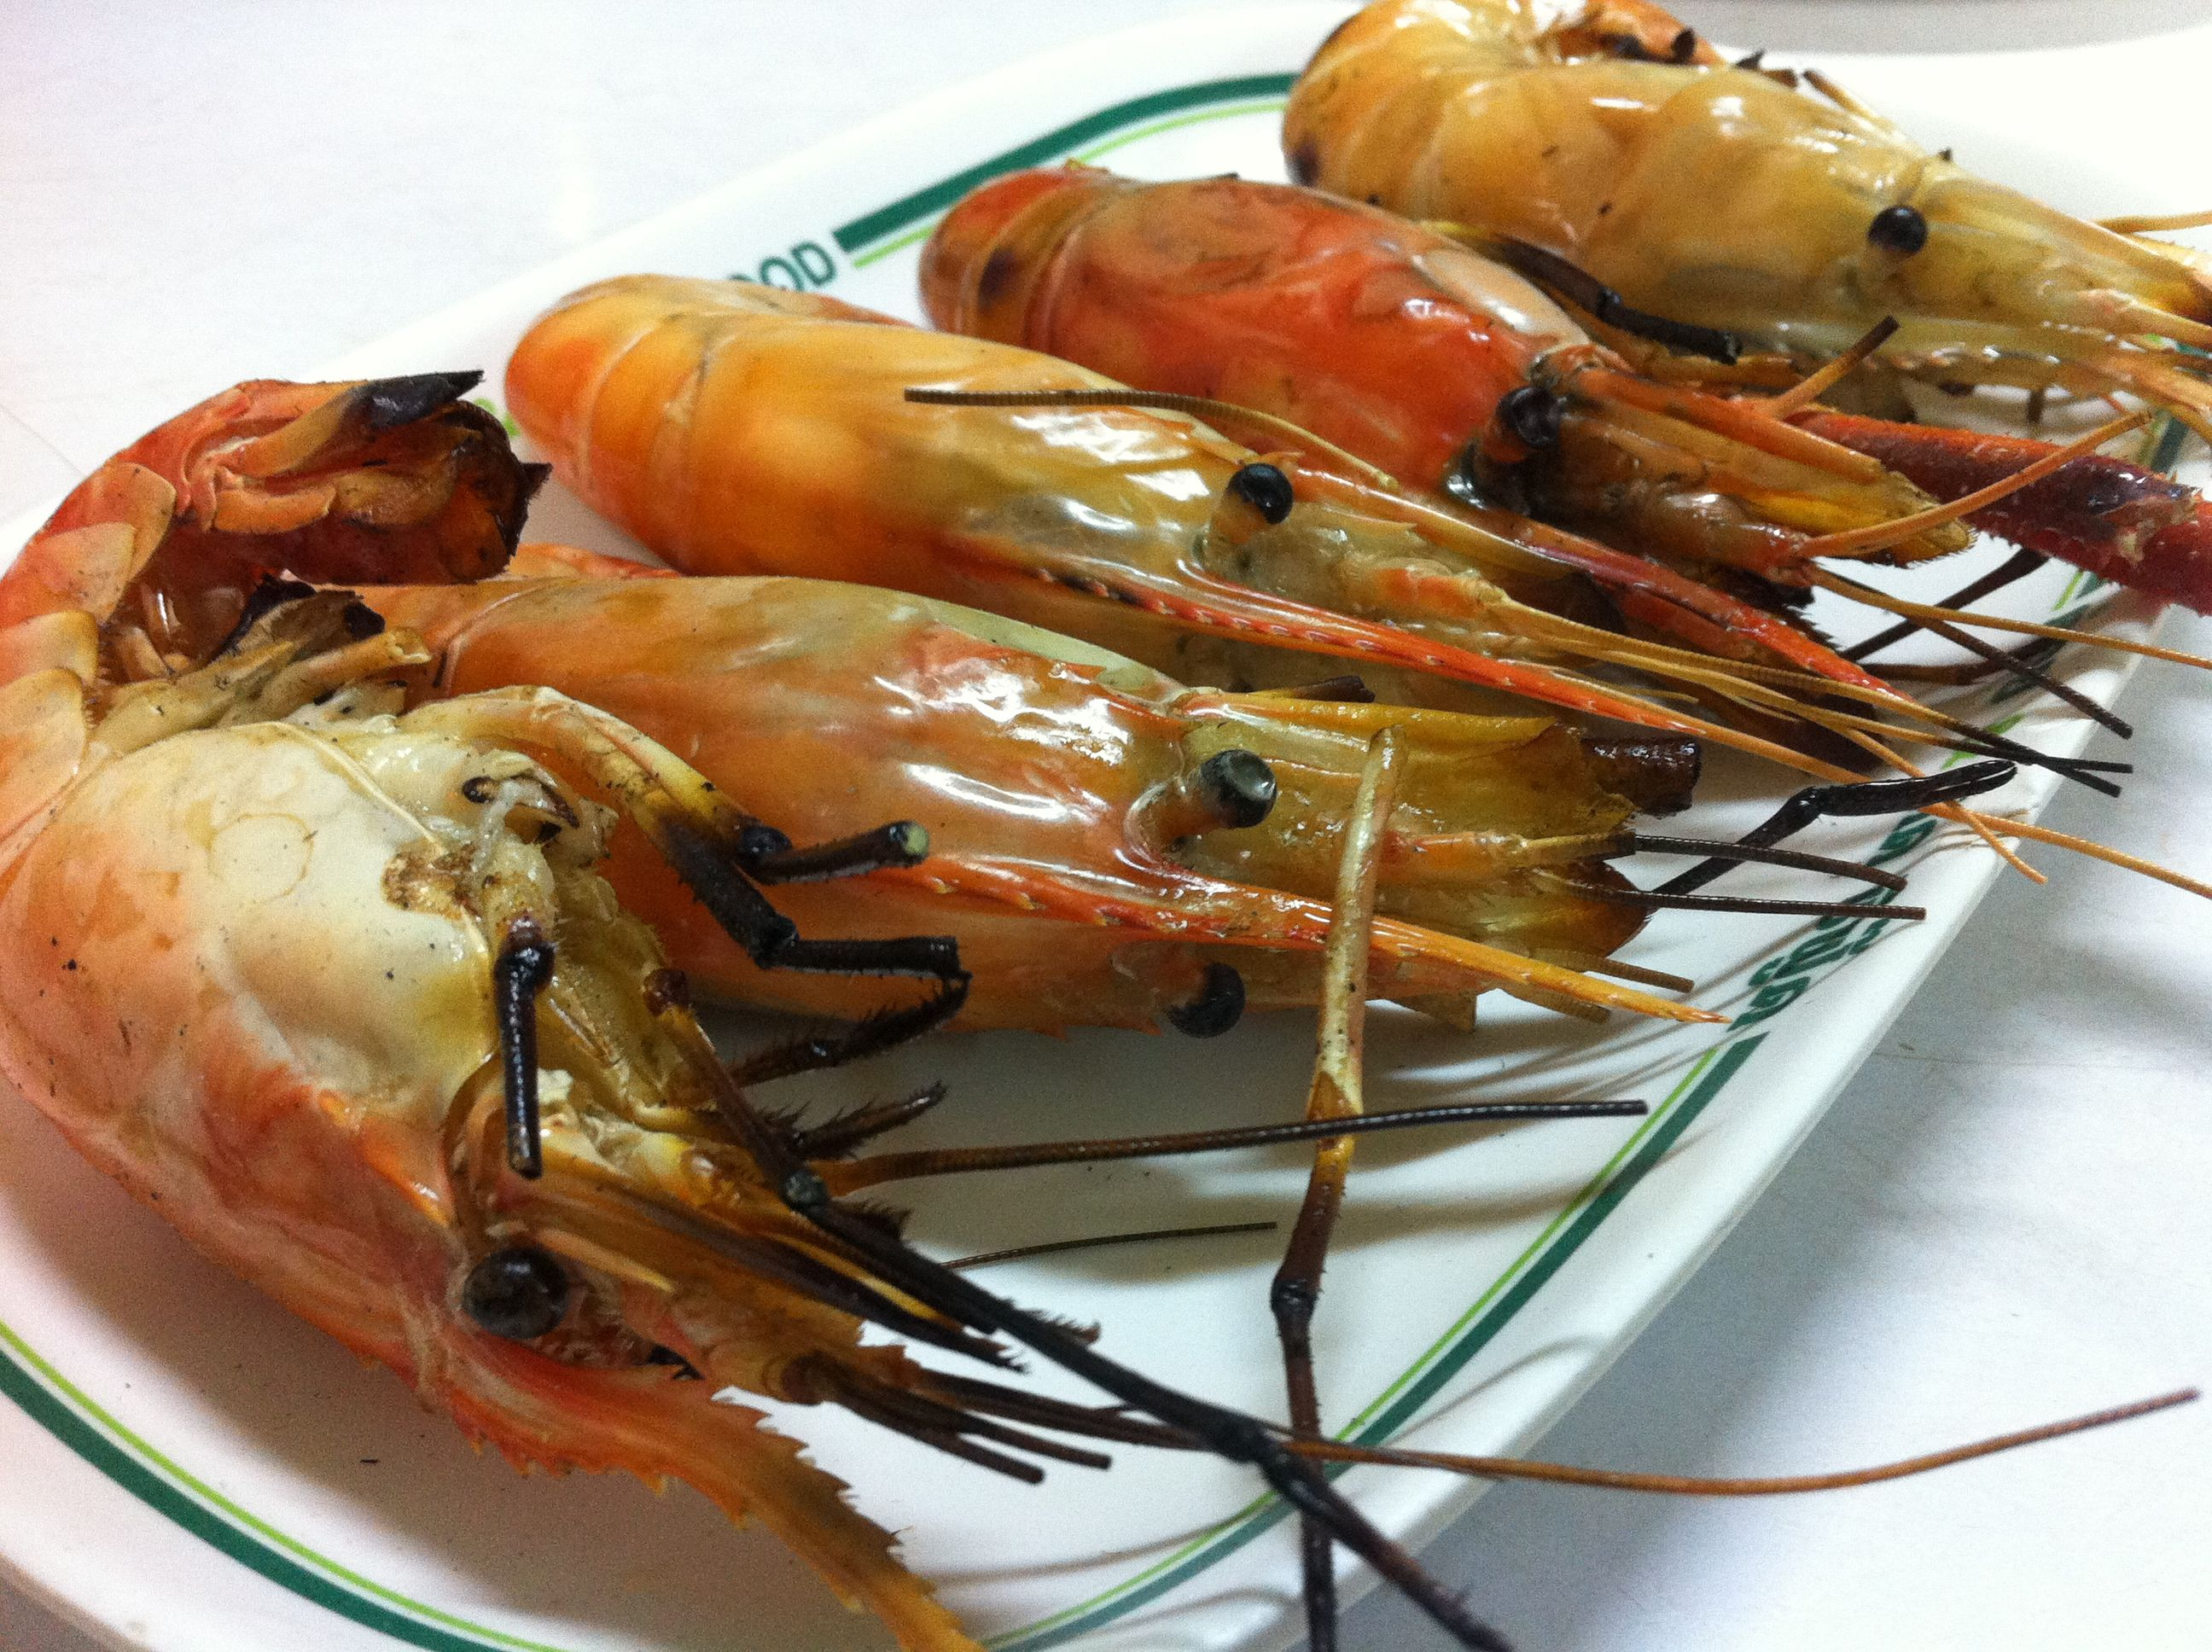 Awesome barbecue prawns in bangkok follow the link to read